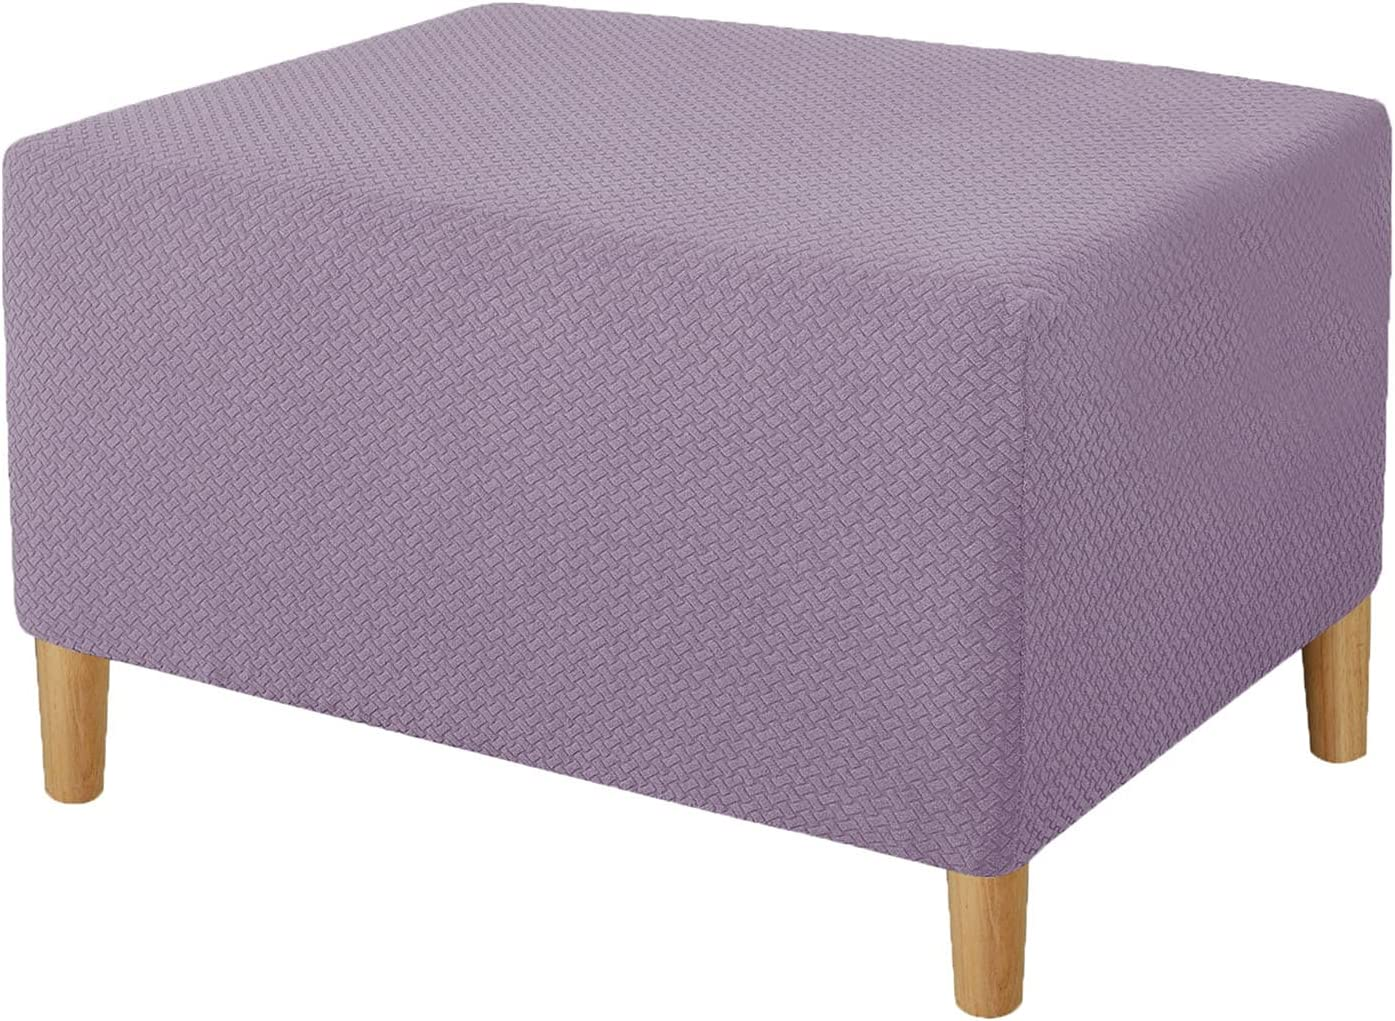 YSLJW Spring new work one after another Modern Footstool Cover Low Stool Protective New Orleans Mall Simple S